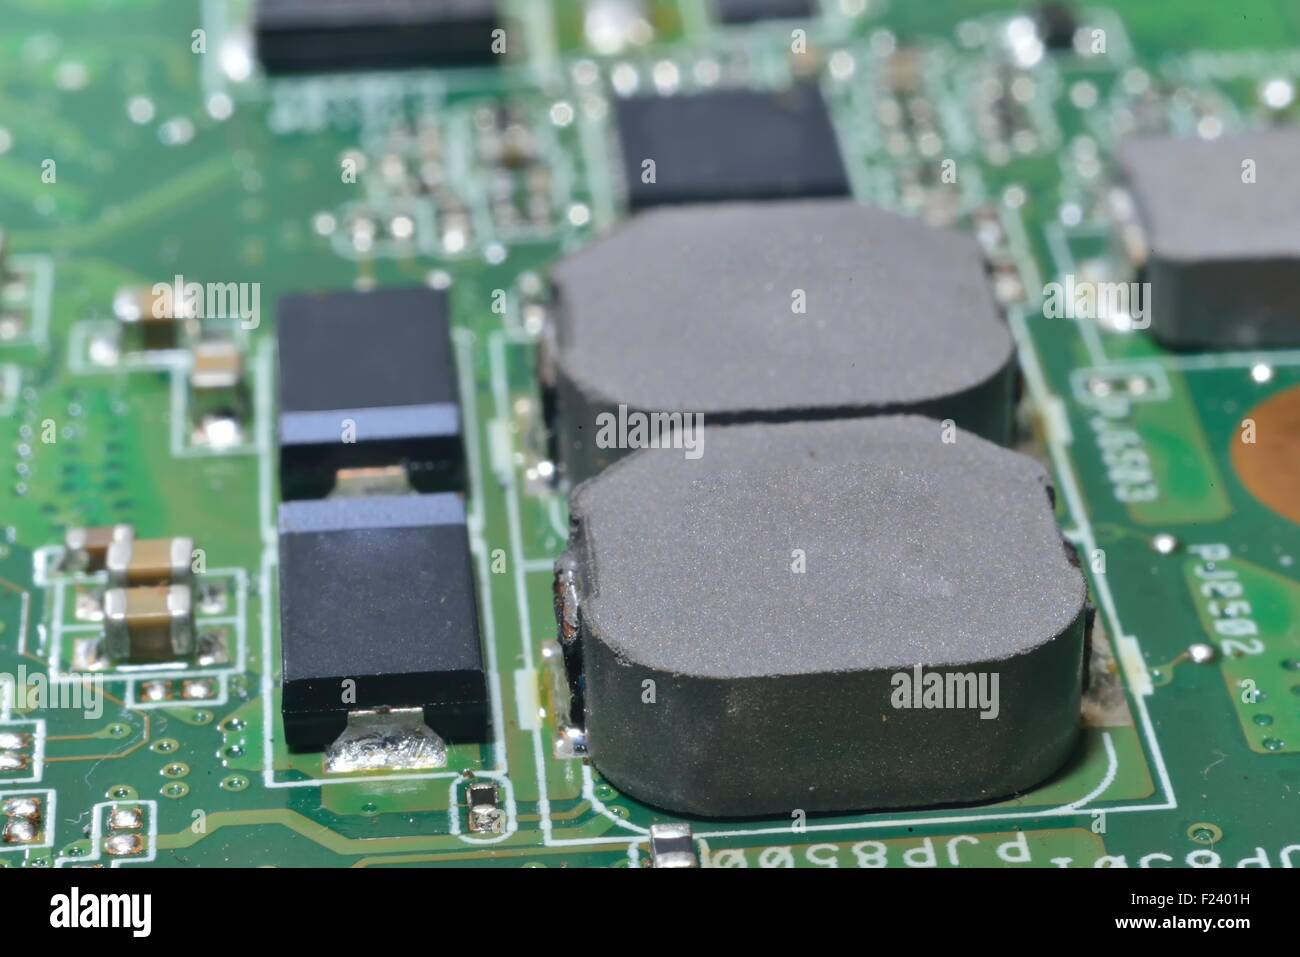 macro zoomed capacitors and chips on motherboard - Stock Image